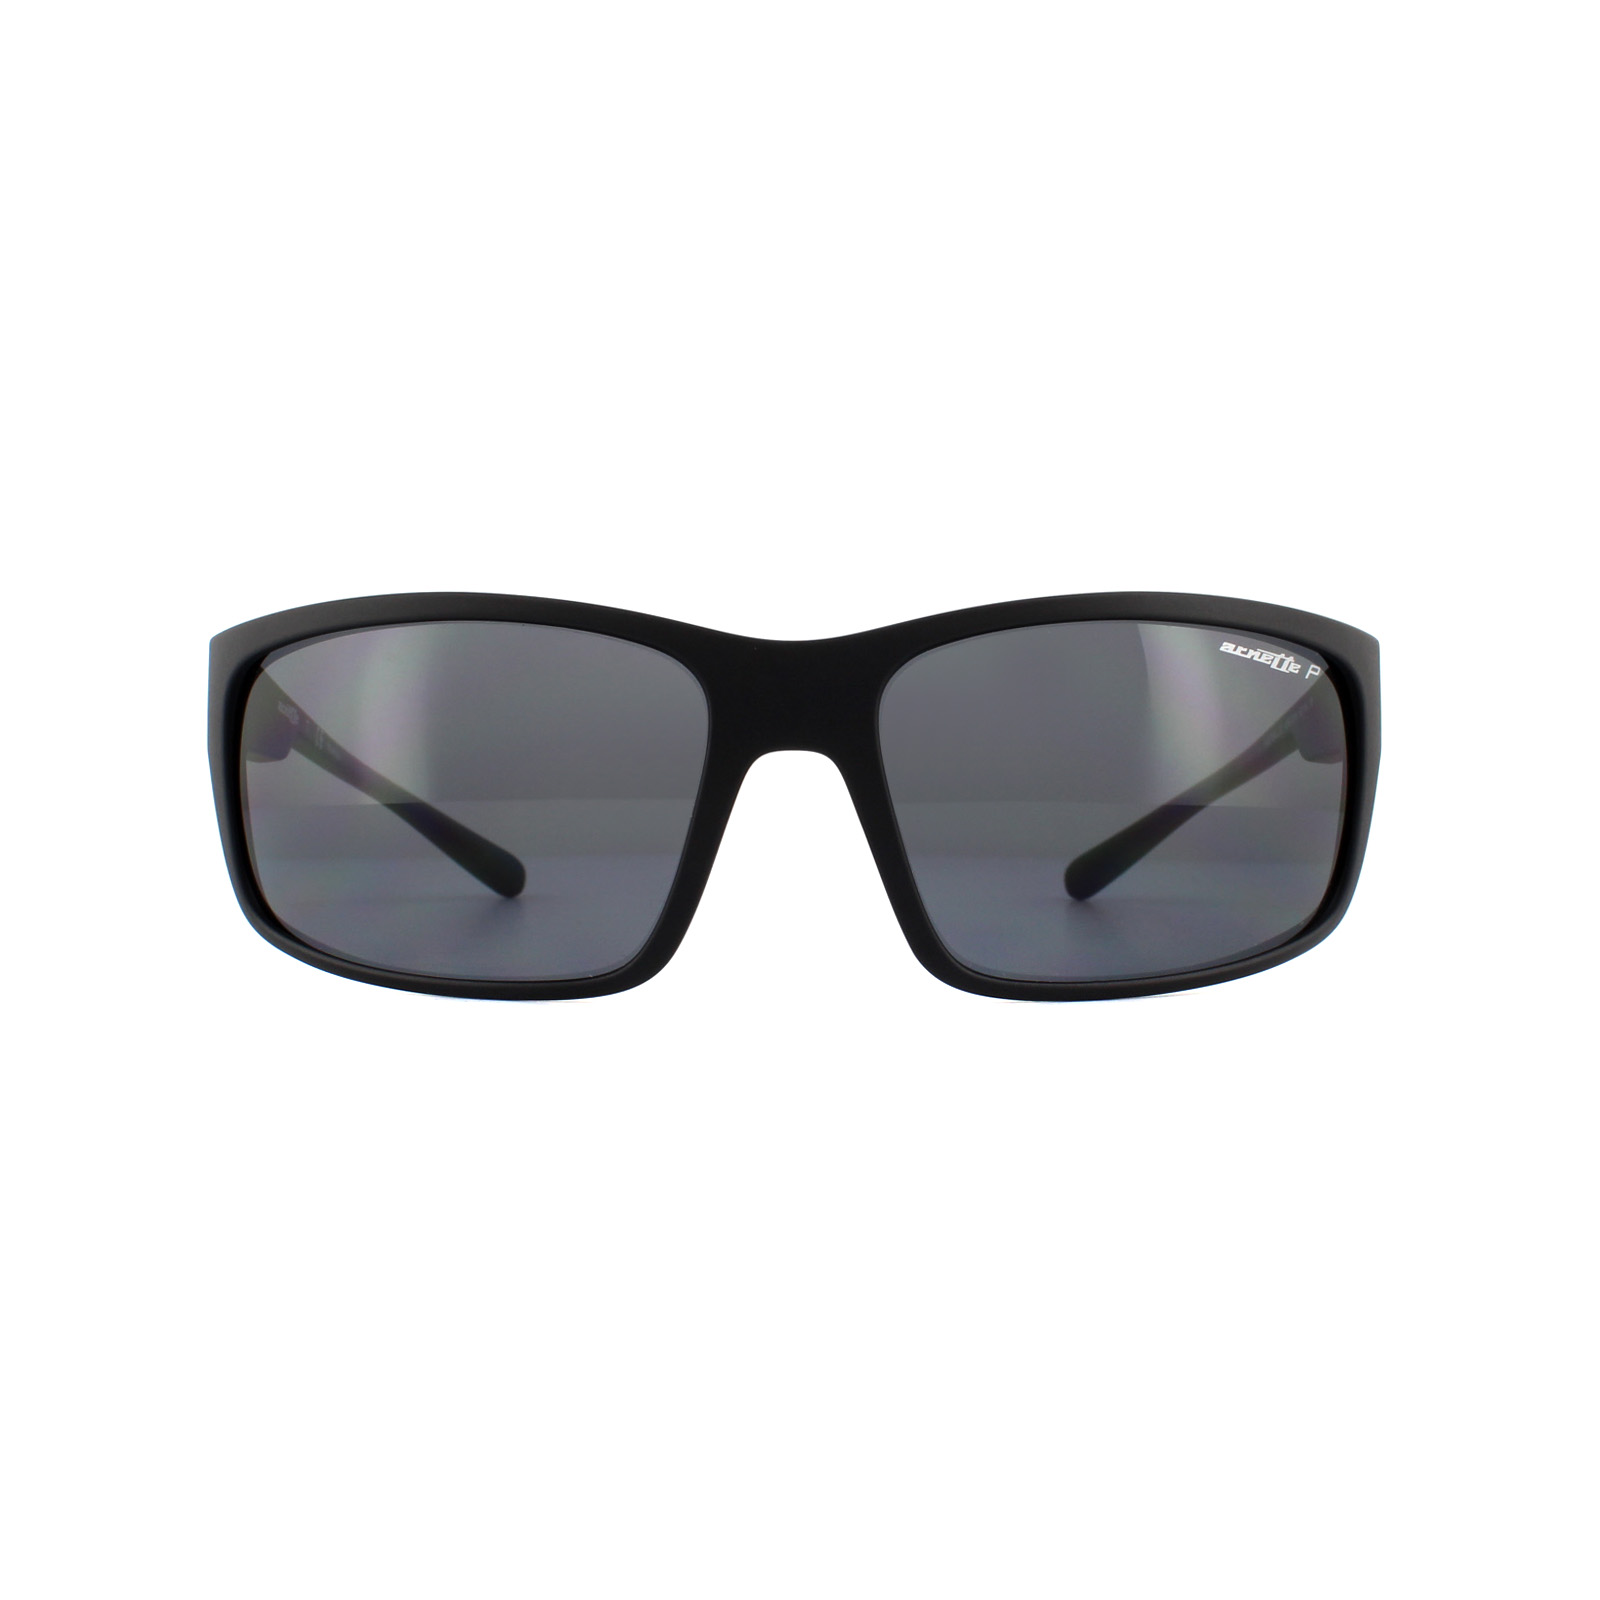 fbfb9f678d142 Sentinel Arnette Sunglasses Fastball 2.0 4242 01 81 Matte Black Grey  Polarized